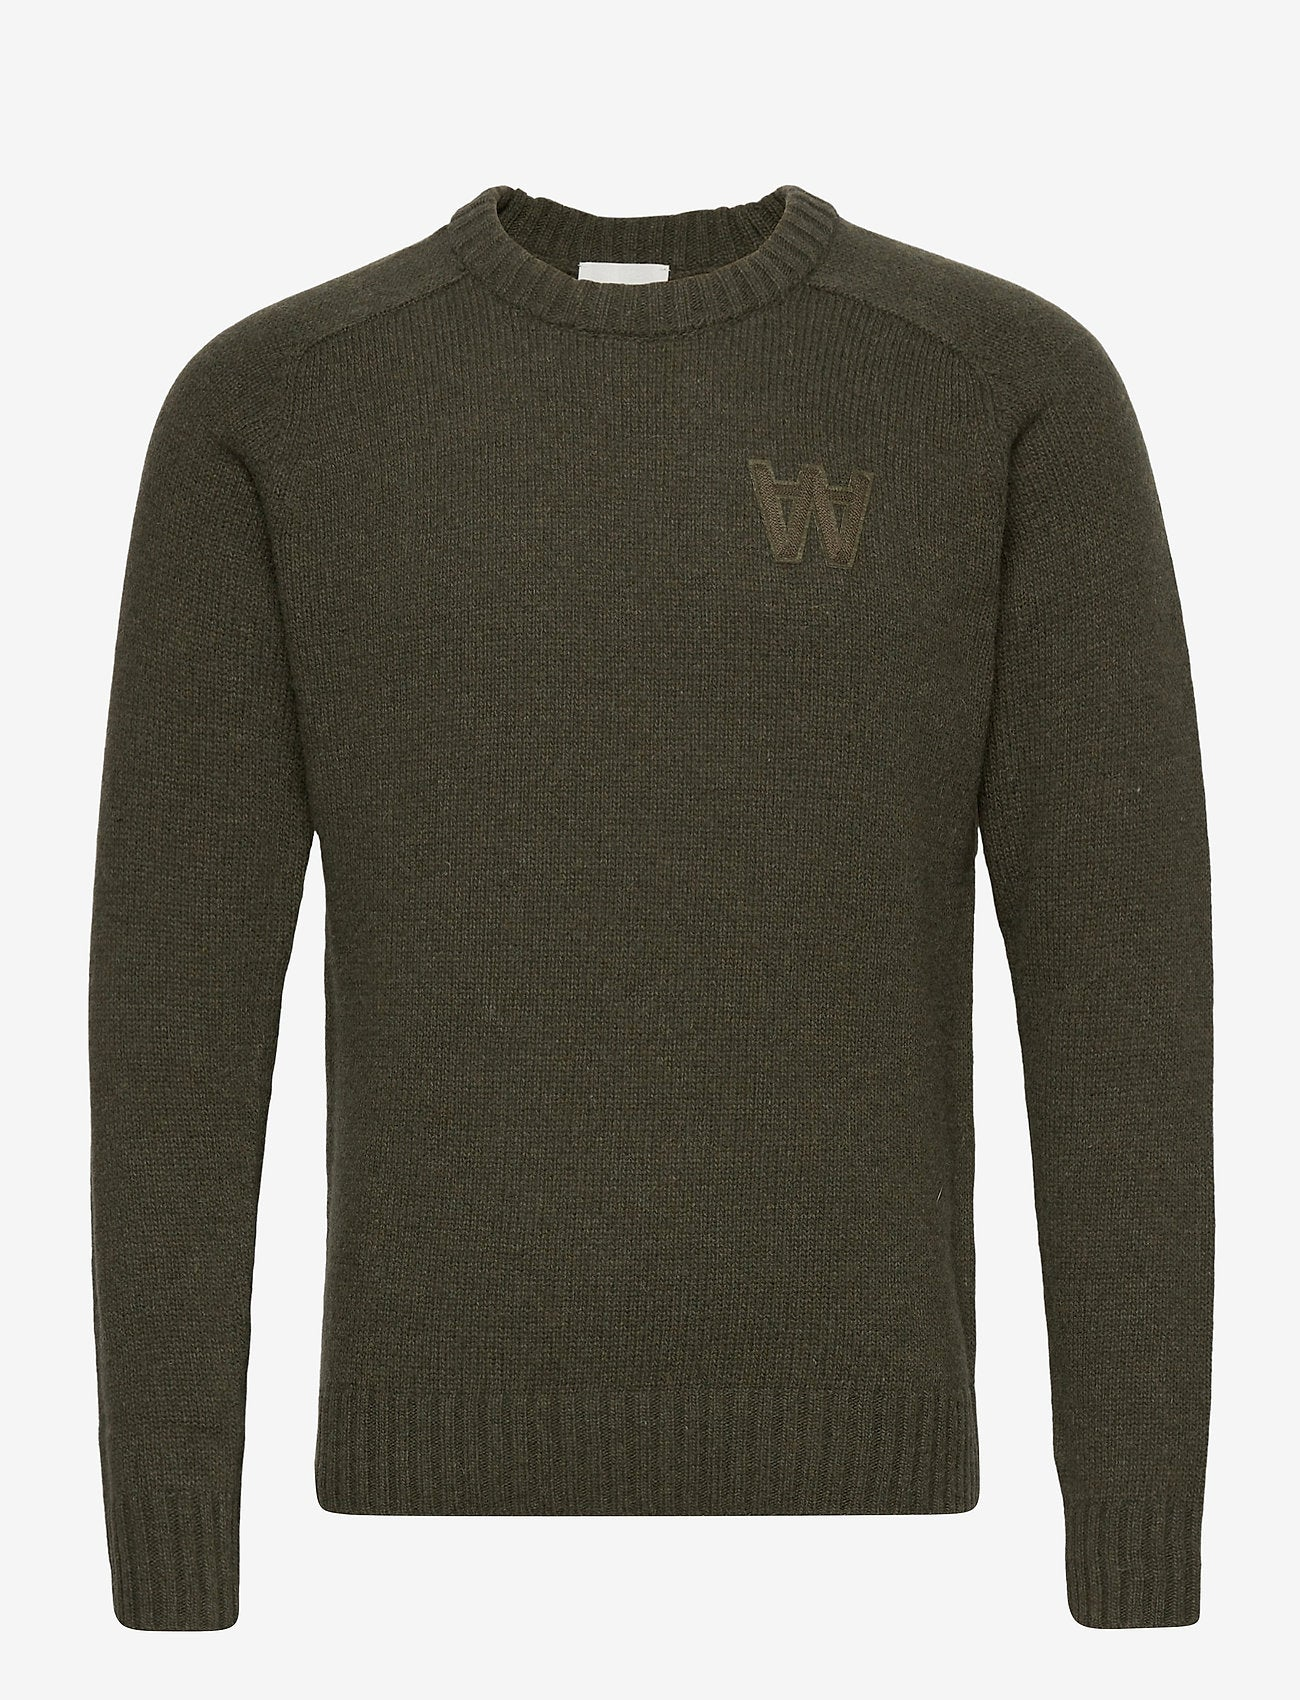 Wood Wood // Kevin jumper - dark green